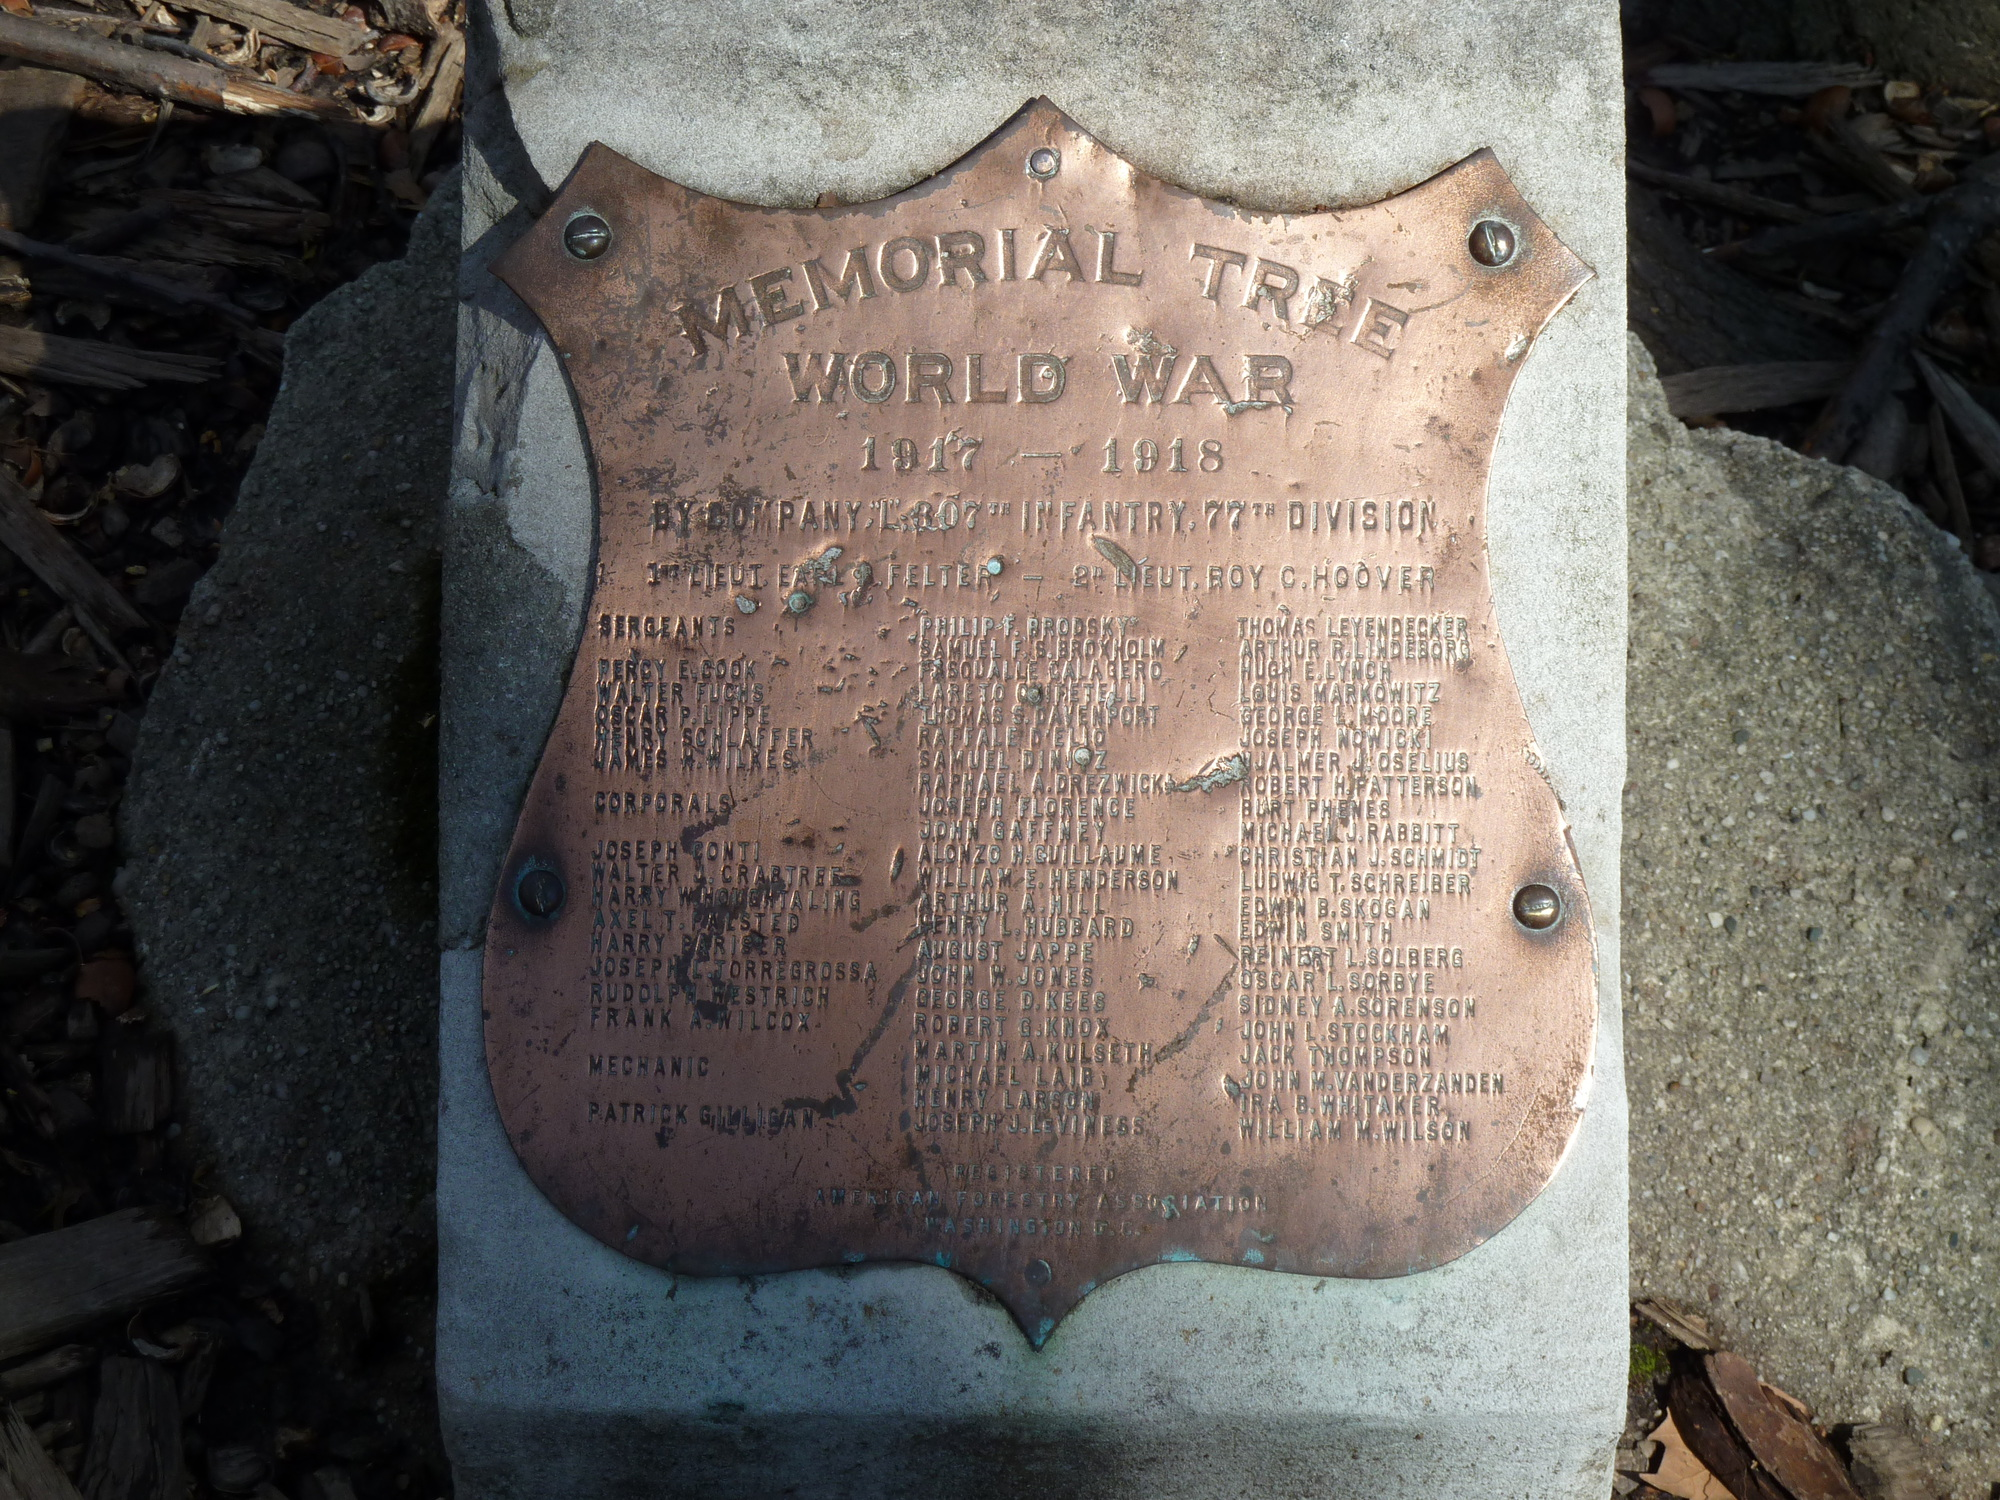 307th Infantry Regiment Memorial Grove (NY)